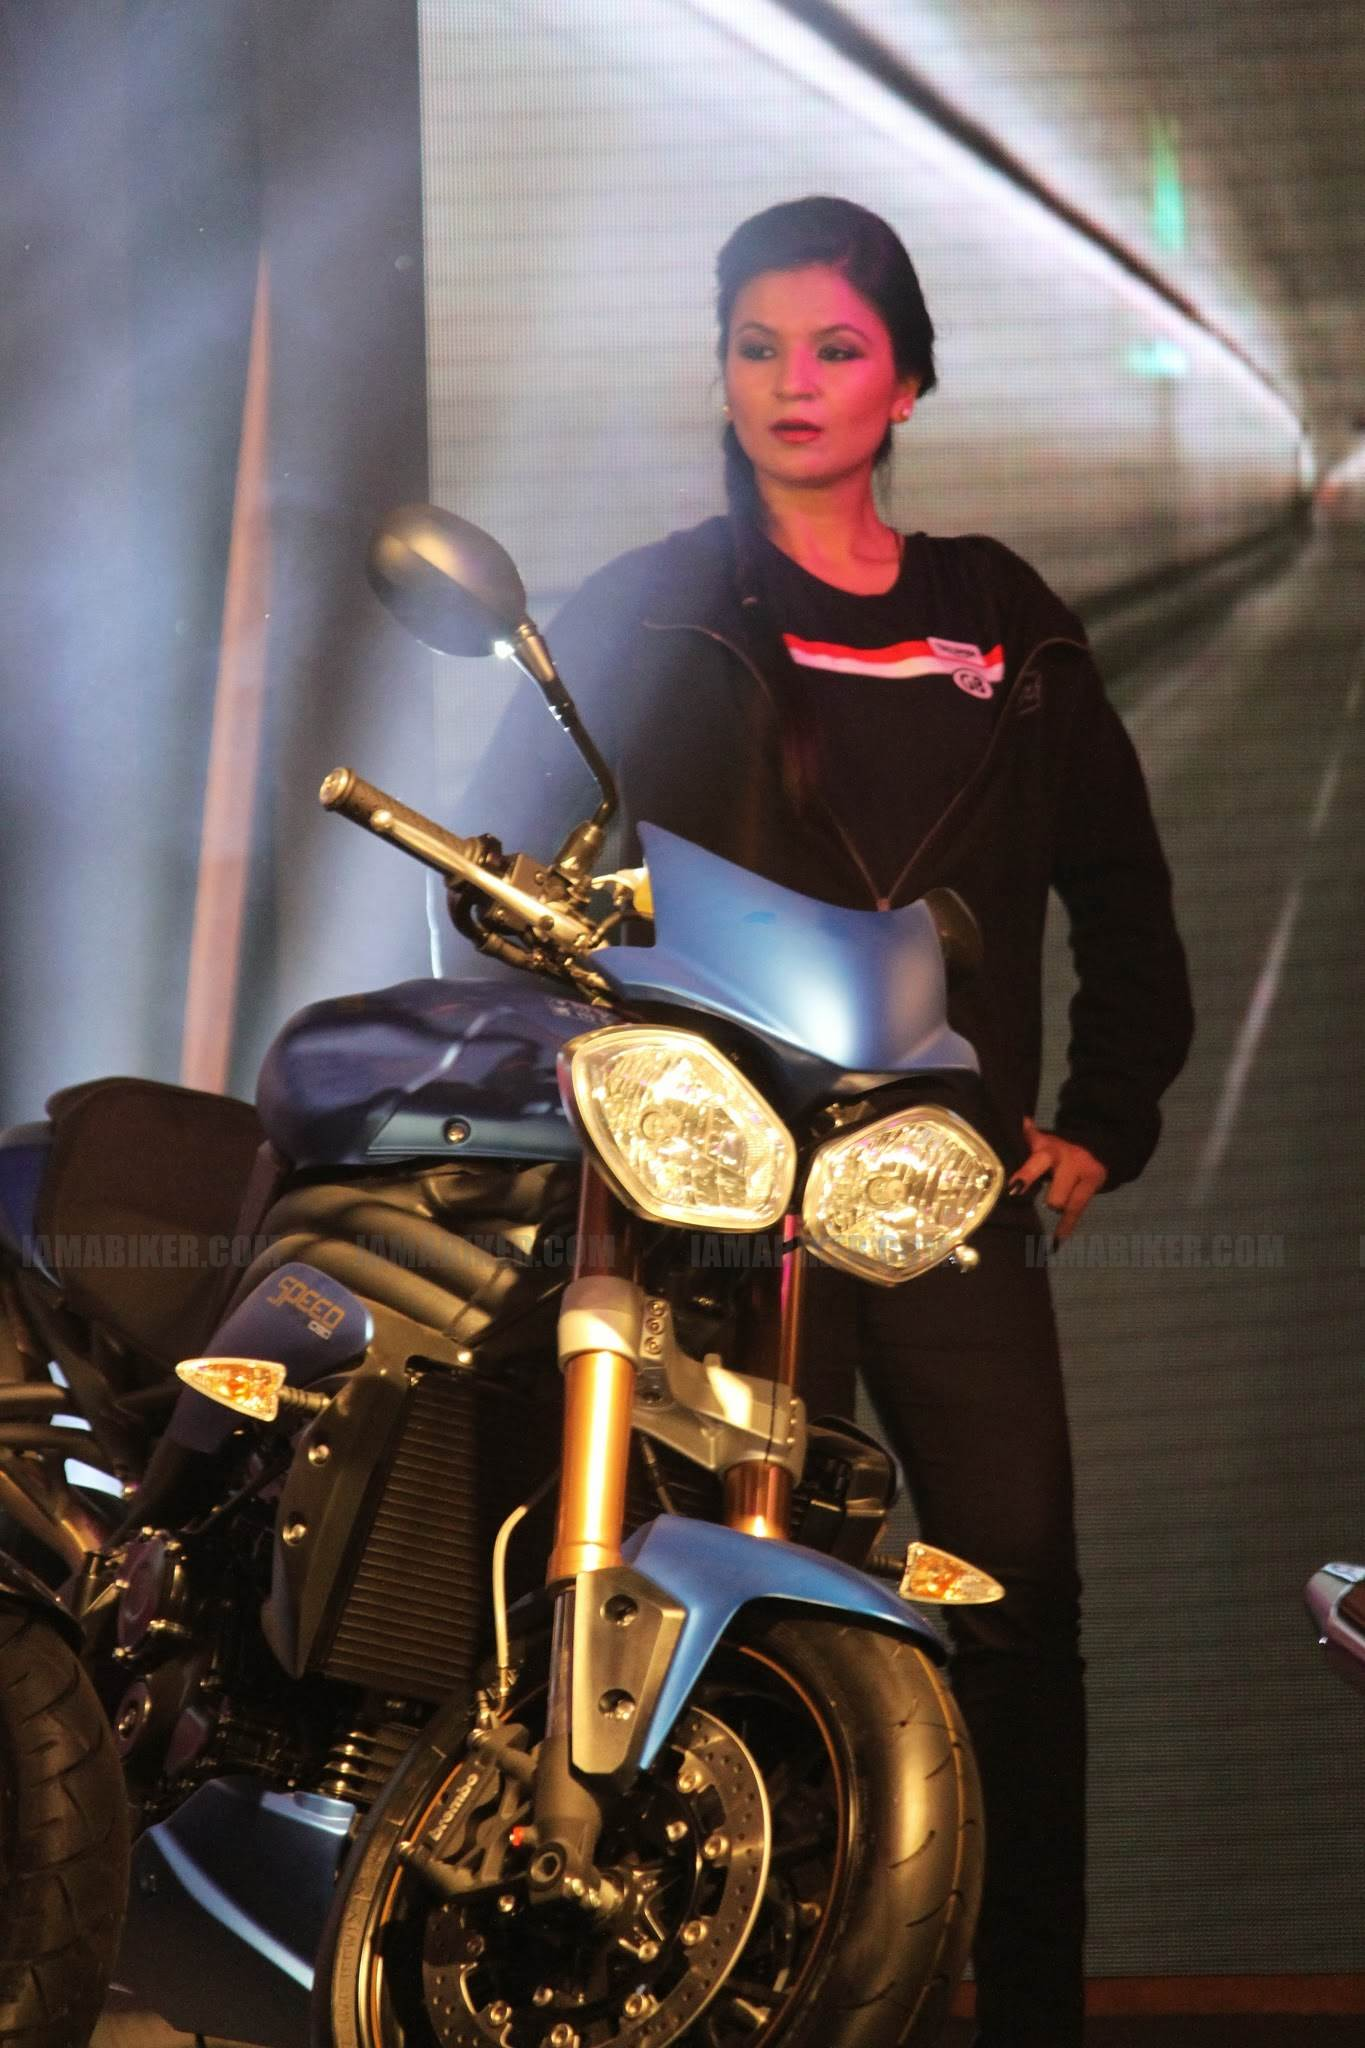 triumph motorcycles india launch - 25